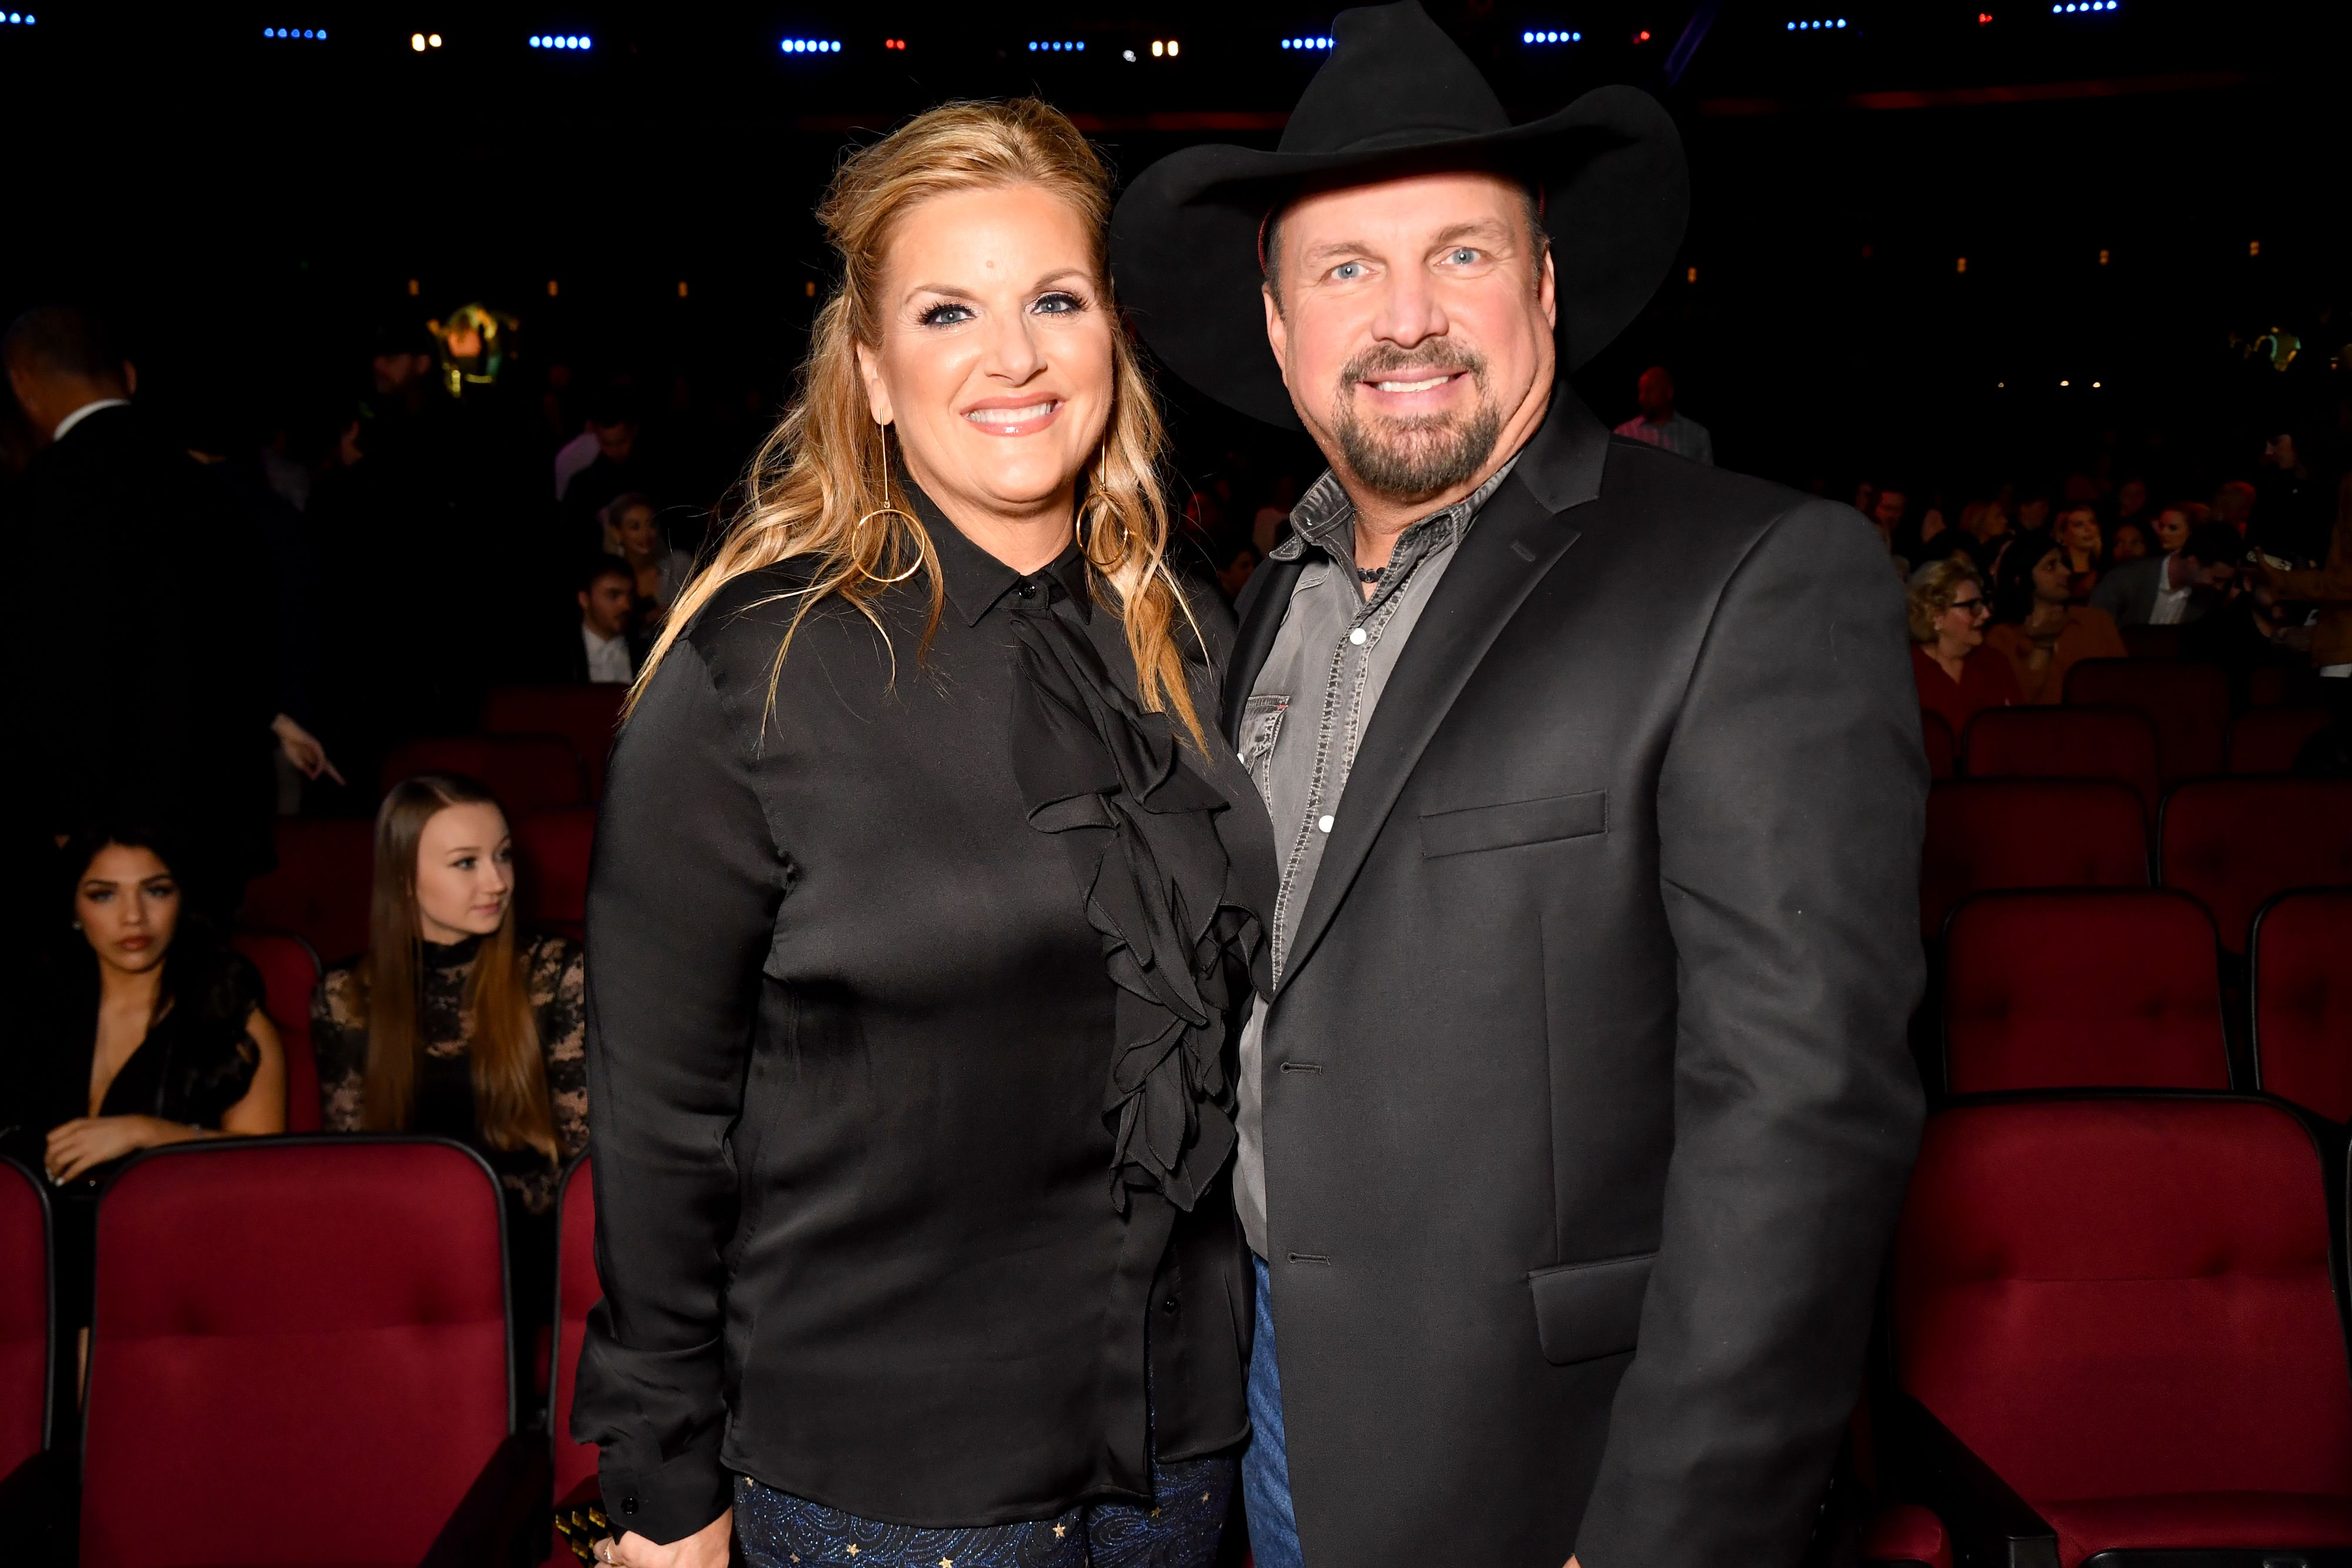 Garth Brooks S Wife Trisha Yearwood Talks Compromise In Their 14